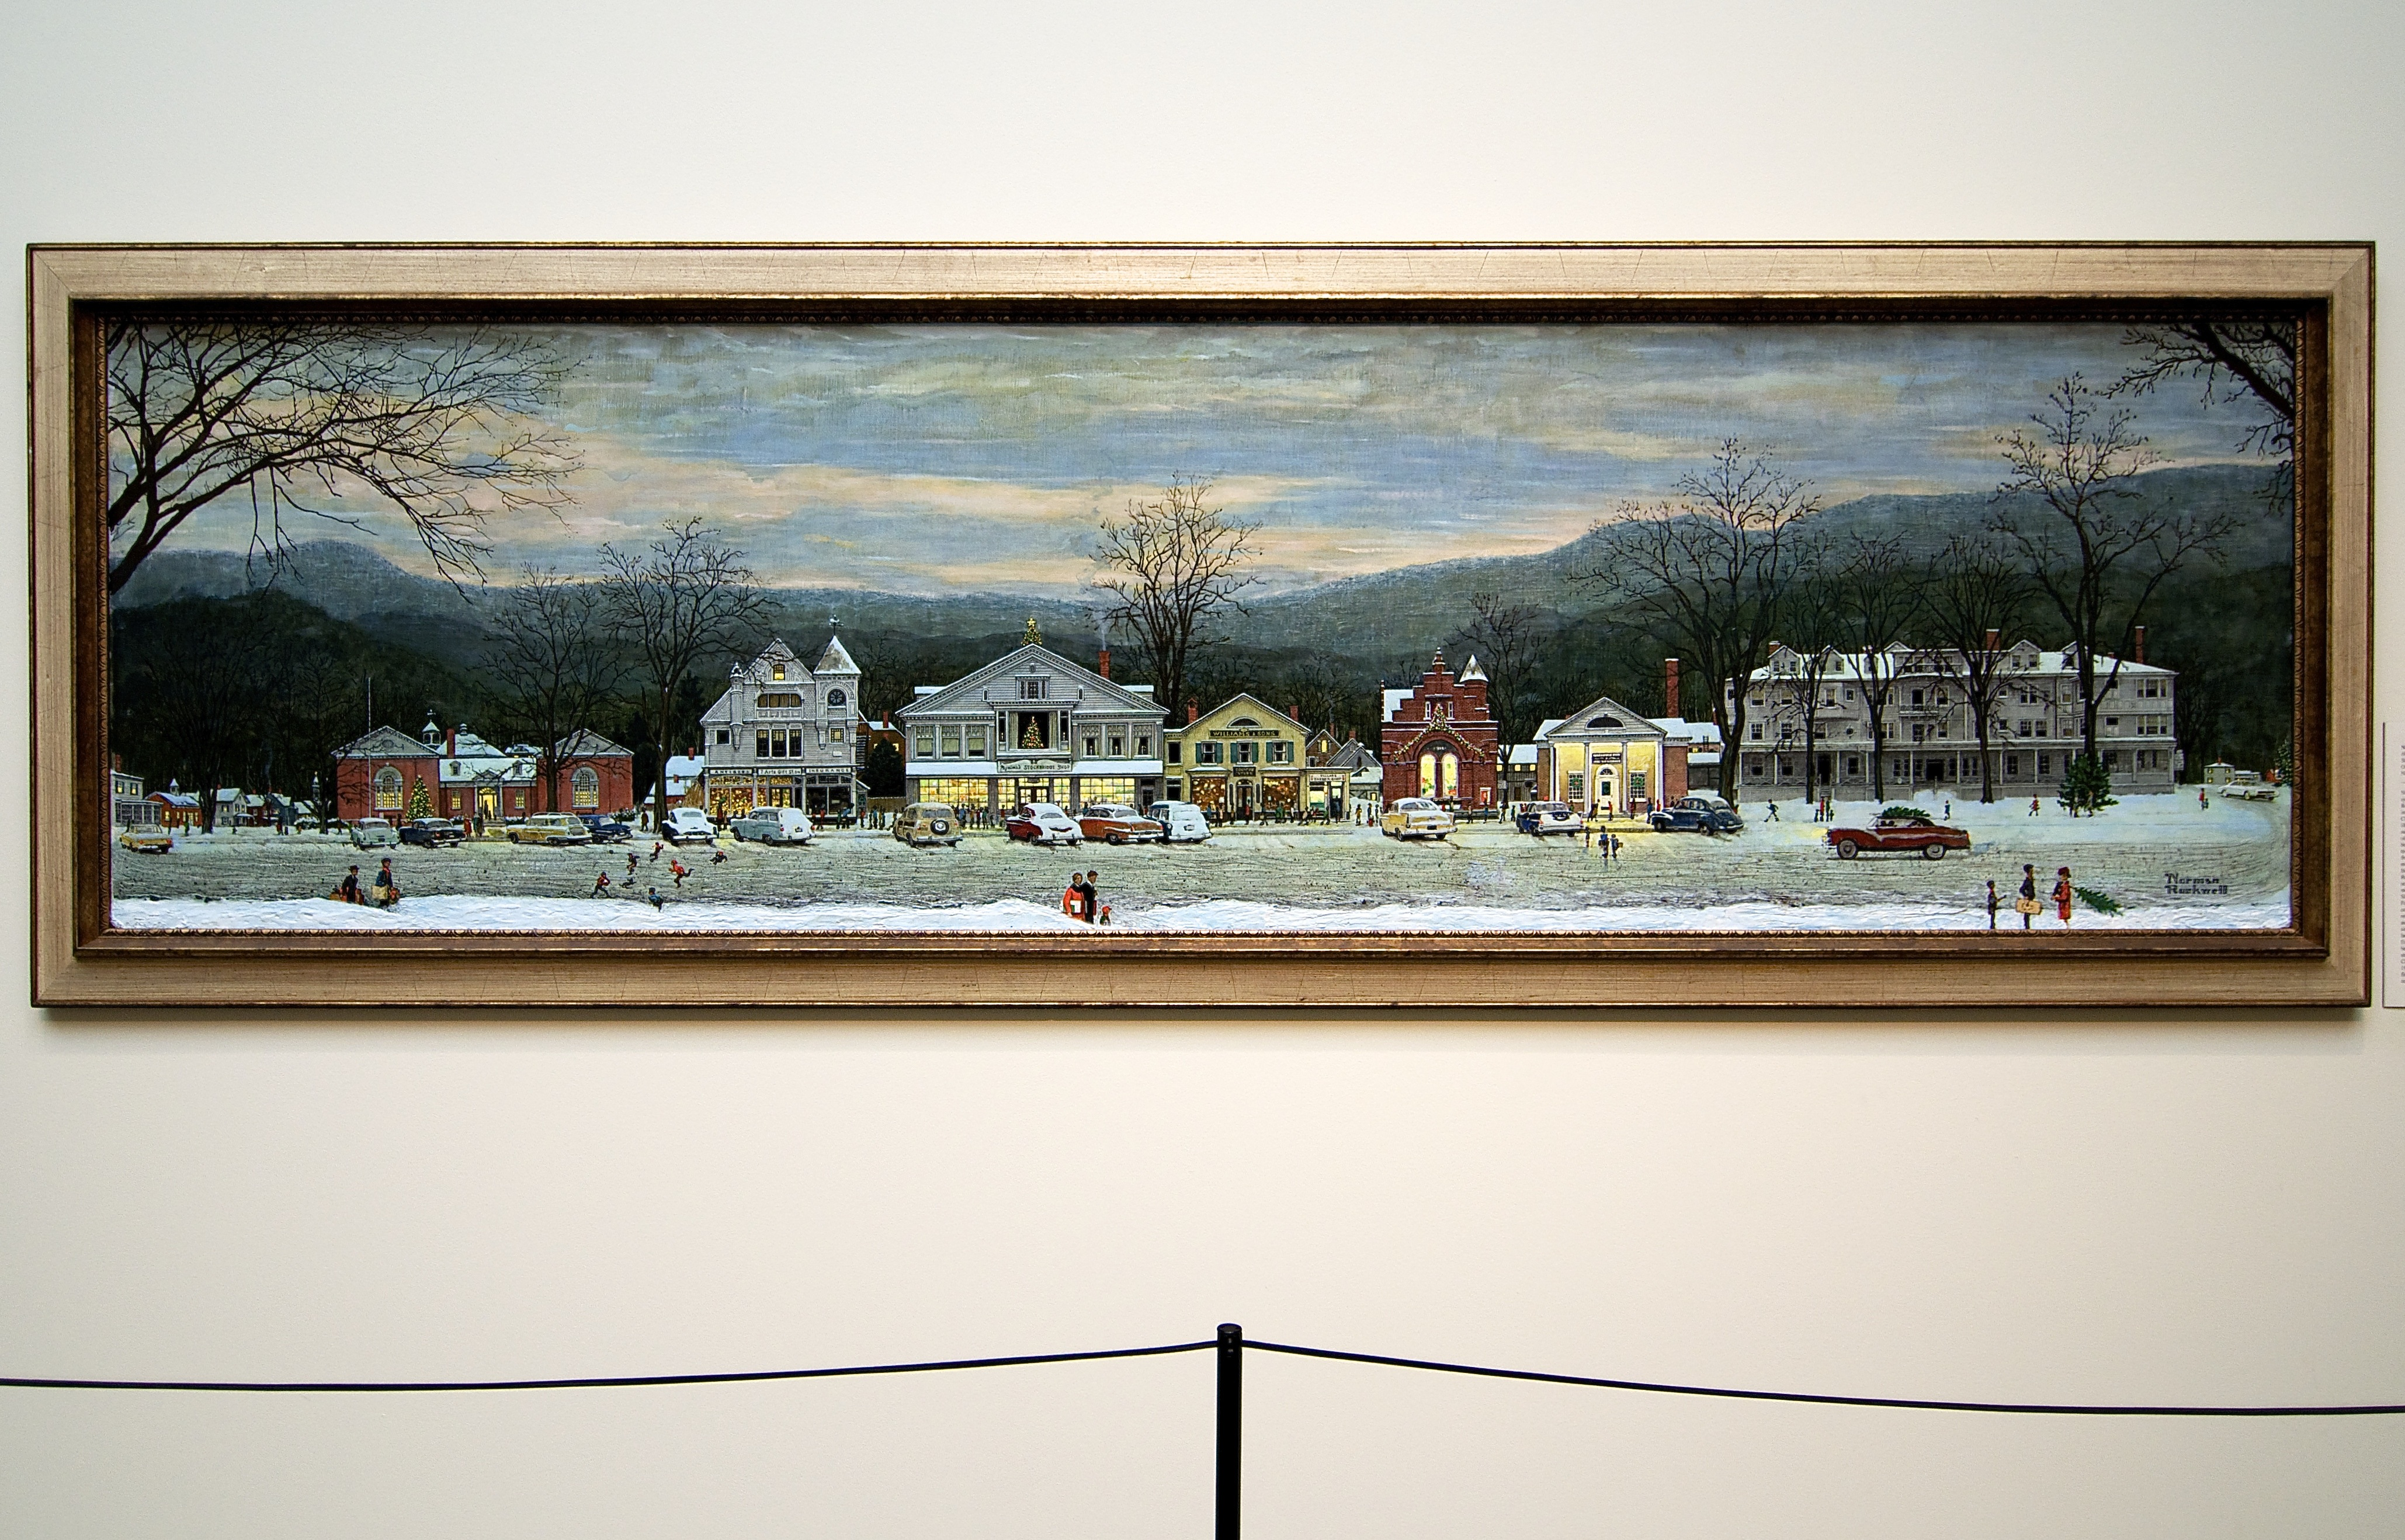 a history of the norman rockwell museum at stockbridge This landmark exhibition sheds new light on norman rockwell's art and  been  organized by the norman rockwell museum in stockbridge,.